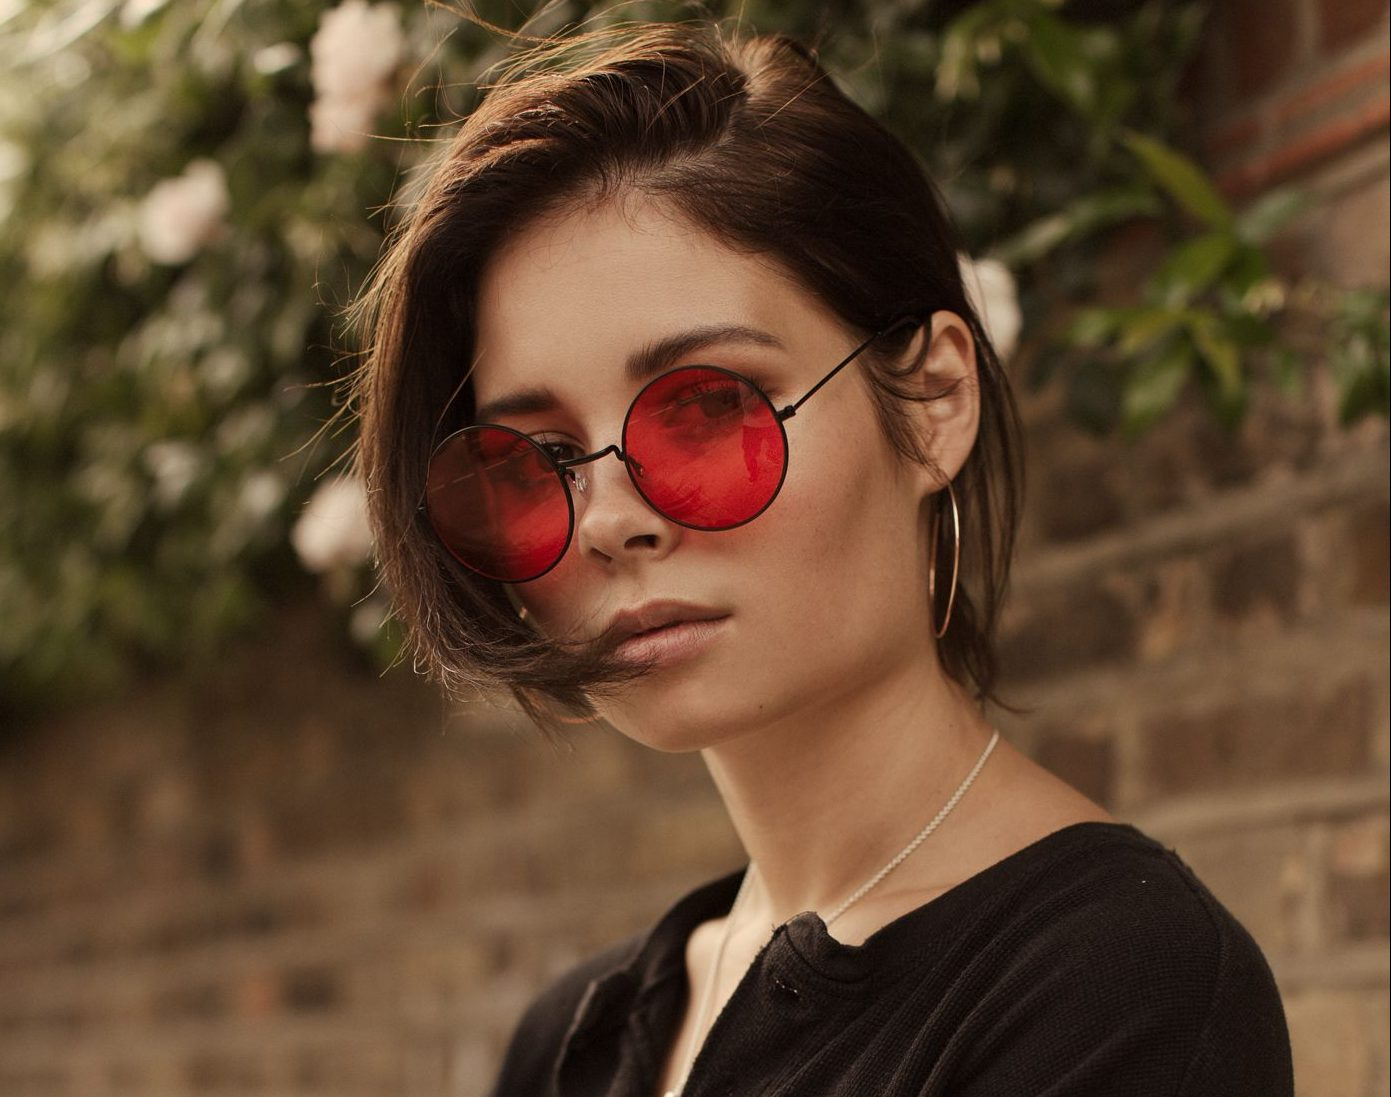 Artist Of The Day 21/09: Nina Nesbitt is one of the most exciting pop artists to release music this year